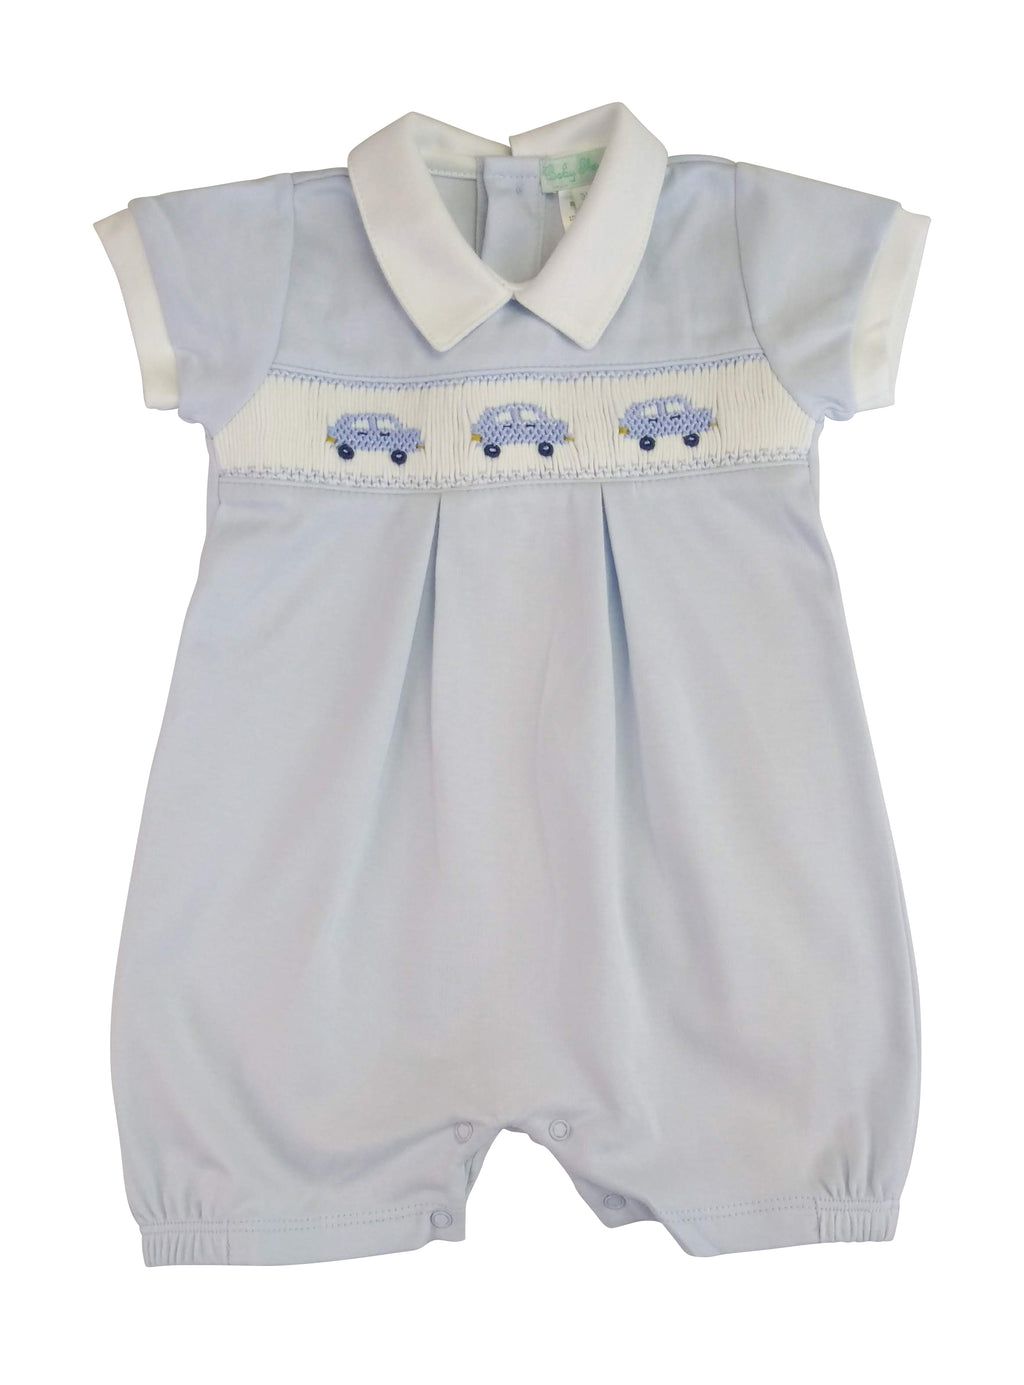 Baby Boy's Blue Cars Hand Smocked Romper - Little Threads Inc. Children's Clothing